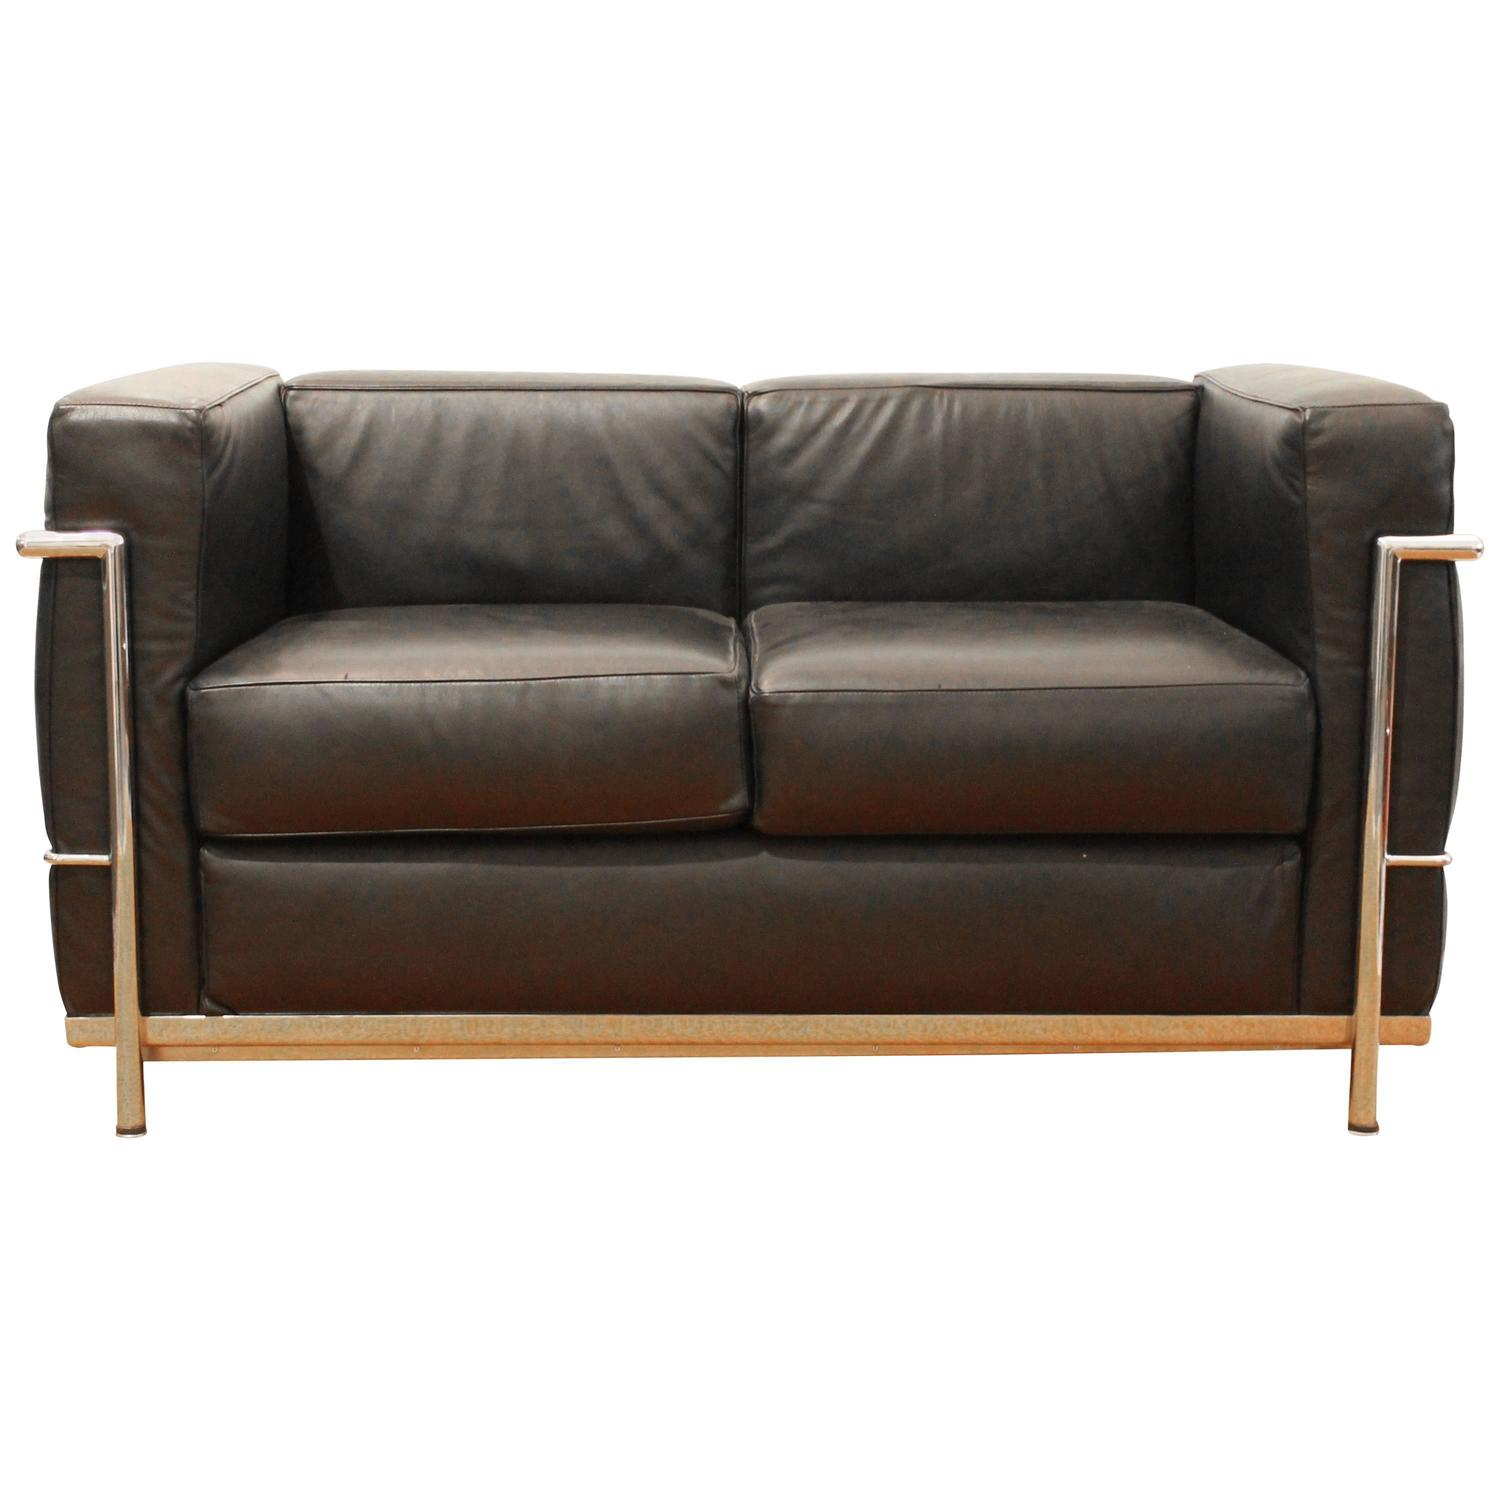 Sofa Le Corbusier Lc2 Sofa, By Le Corbusier For Alivar For Sale At 1stdibs